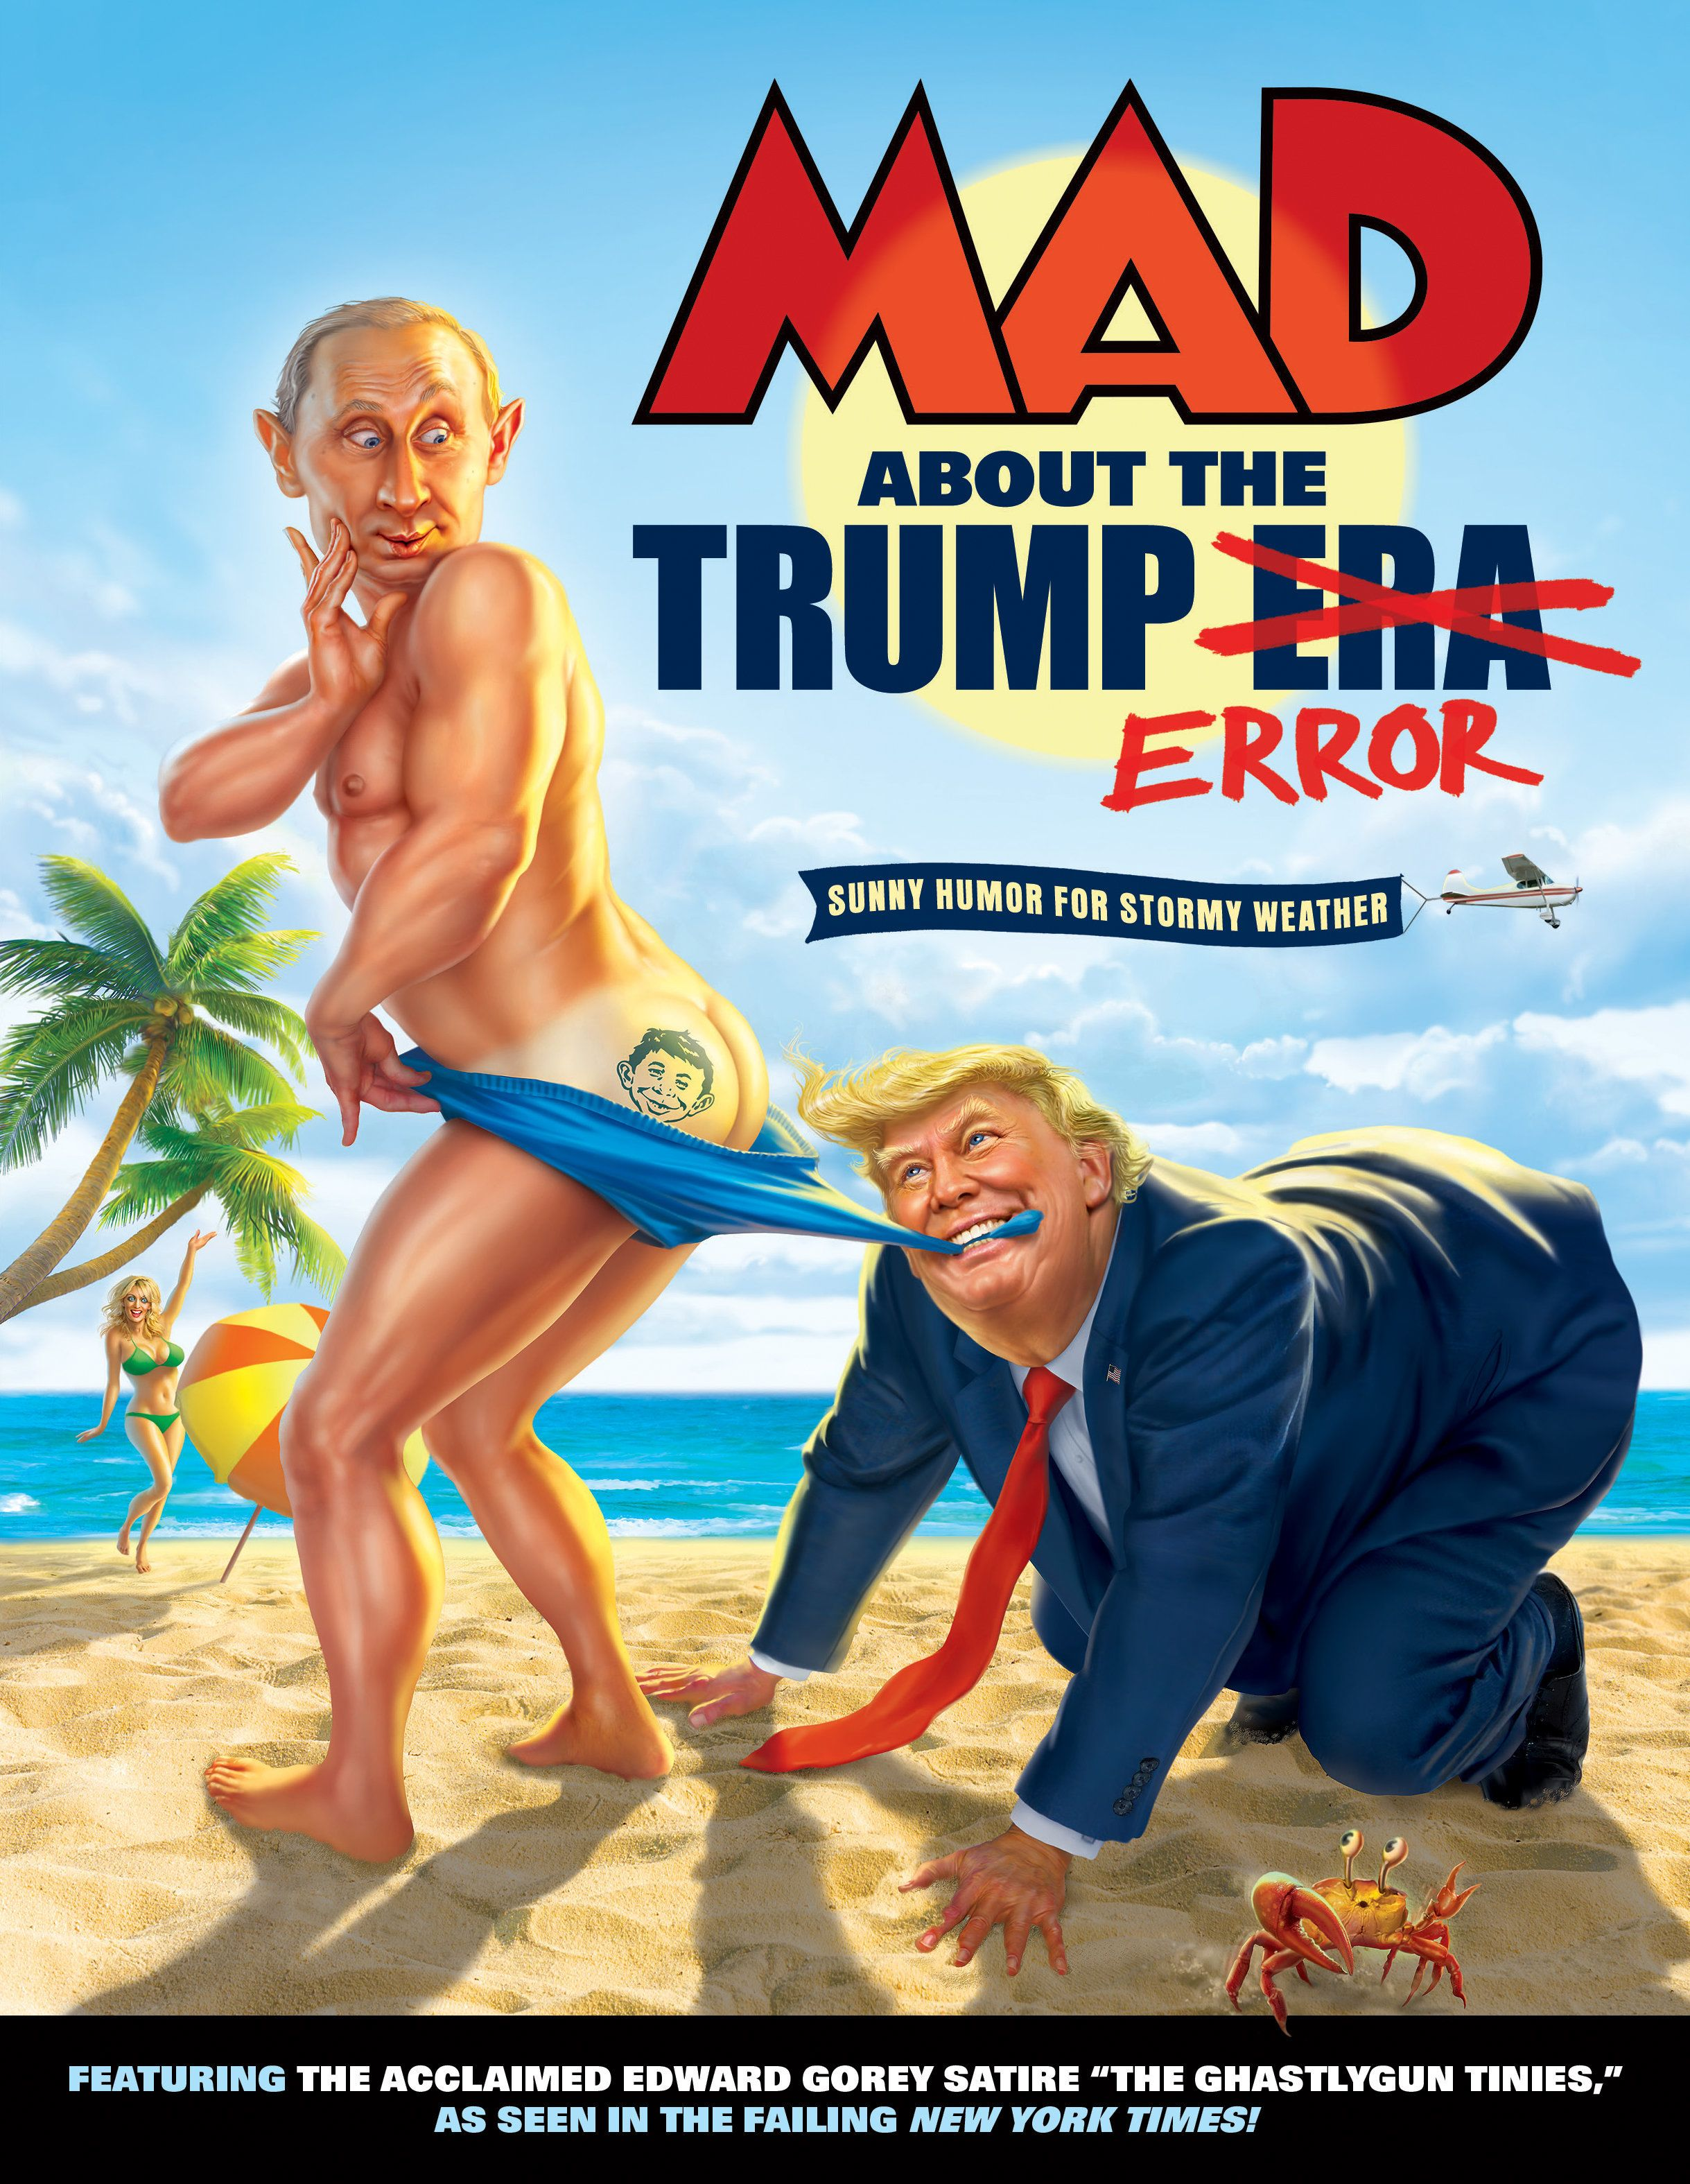 Mad Magazine Goes For Madly Hilarious In New Book Bashing Trump